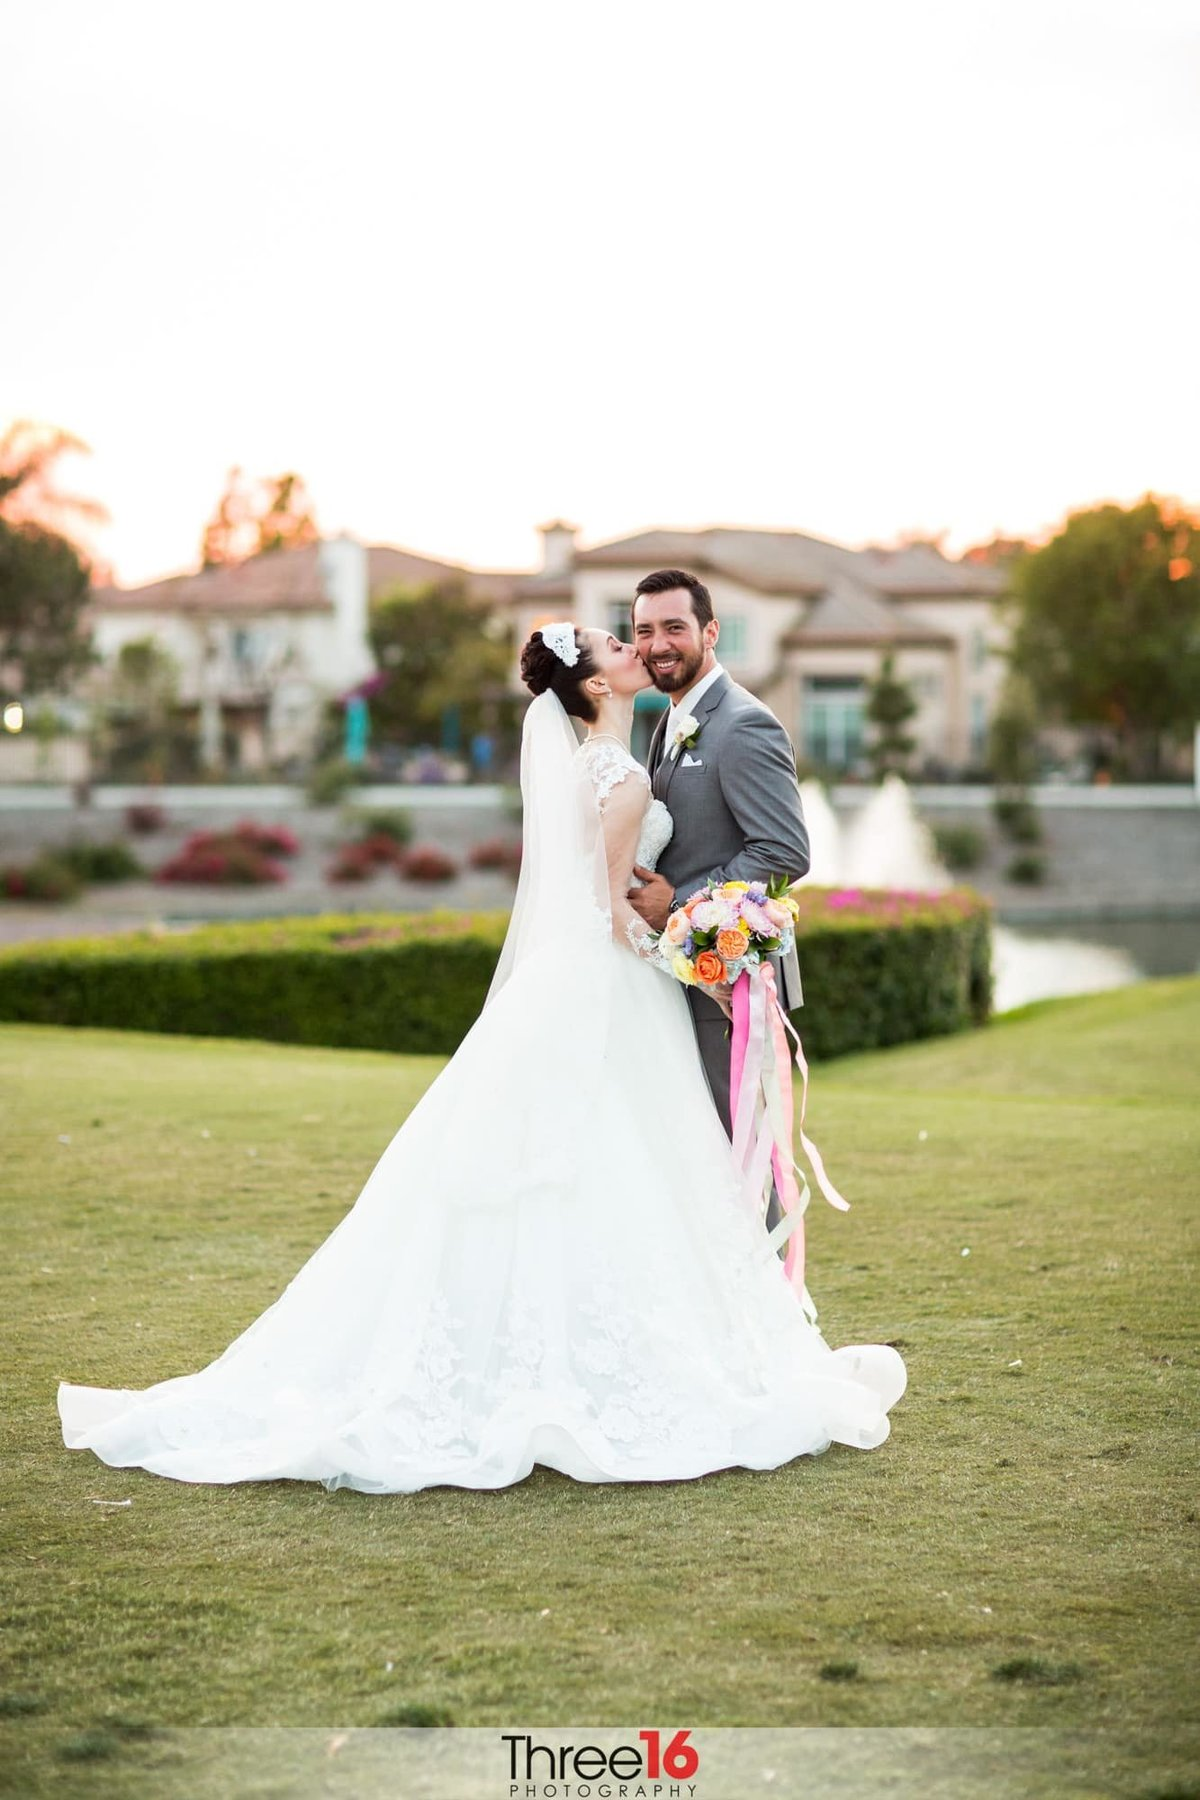 Tustin Ranch Golf Club Wedding Orange County Wedding Photographer Los Angeles Photography Three16 Photography 02